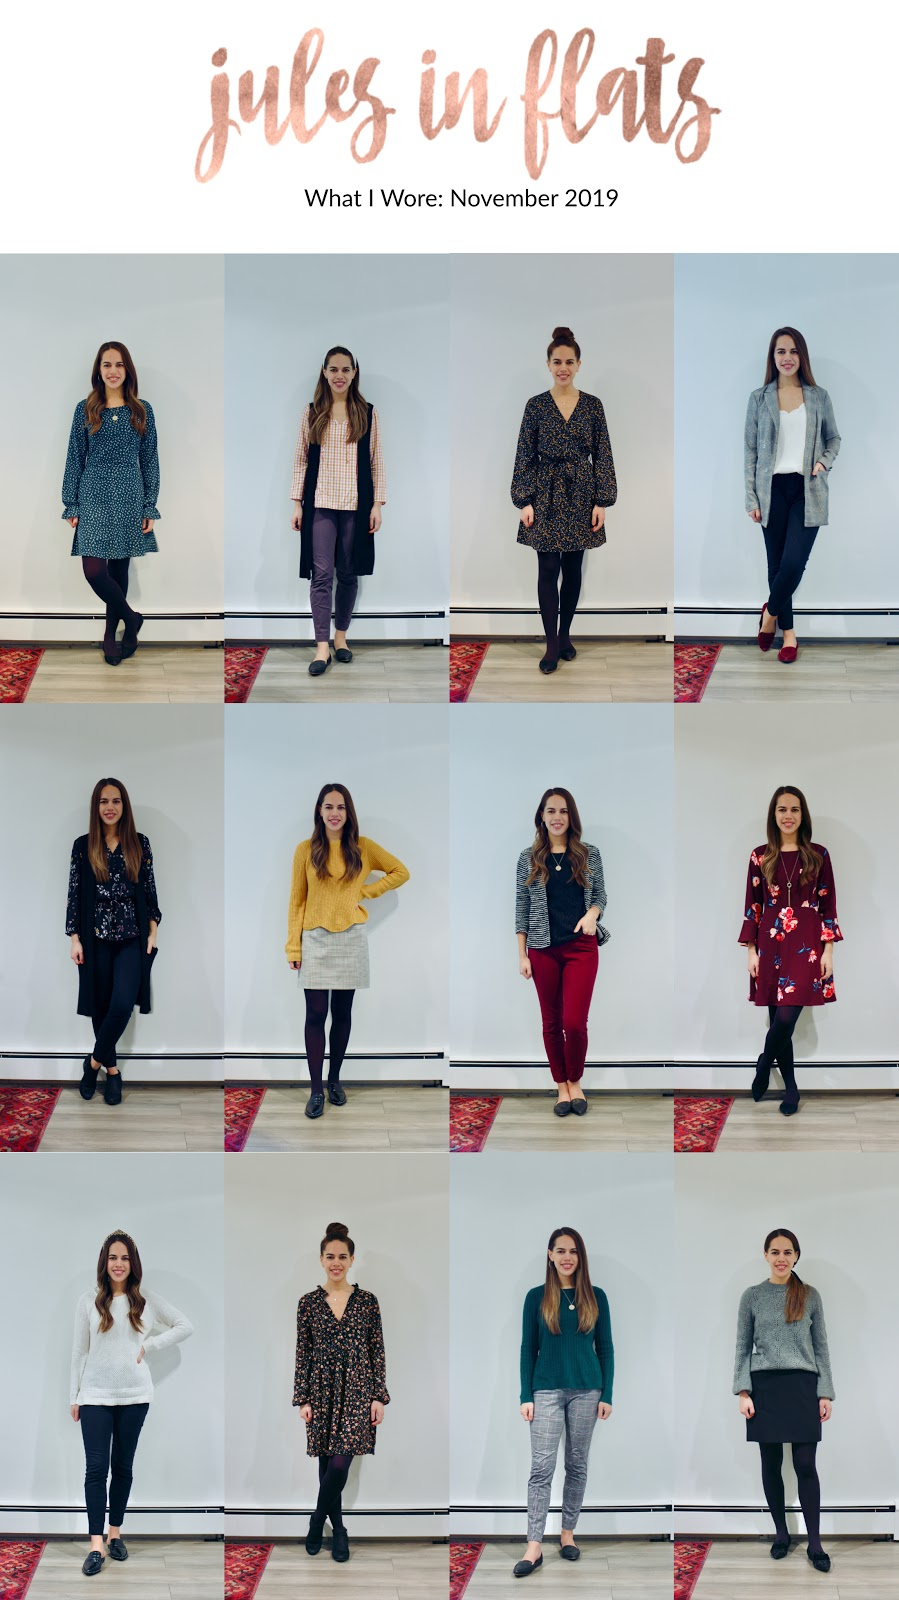 Jules in Flats - Monthly Outfit Roundup: November 2019